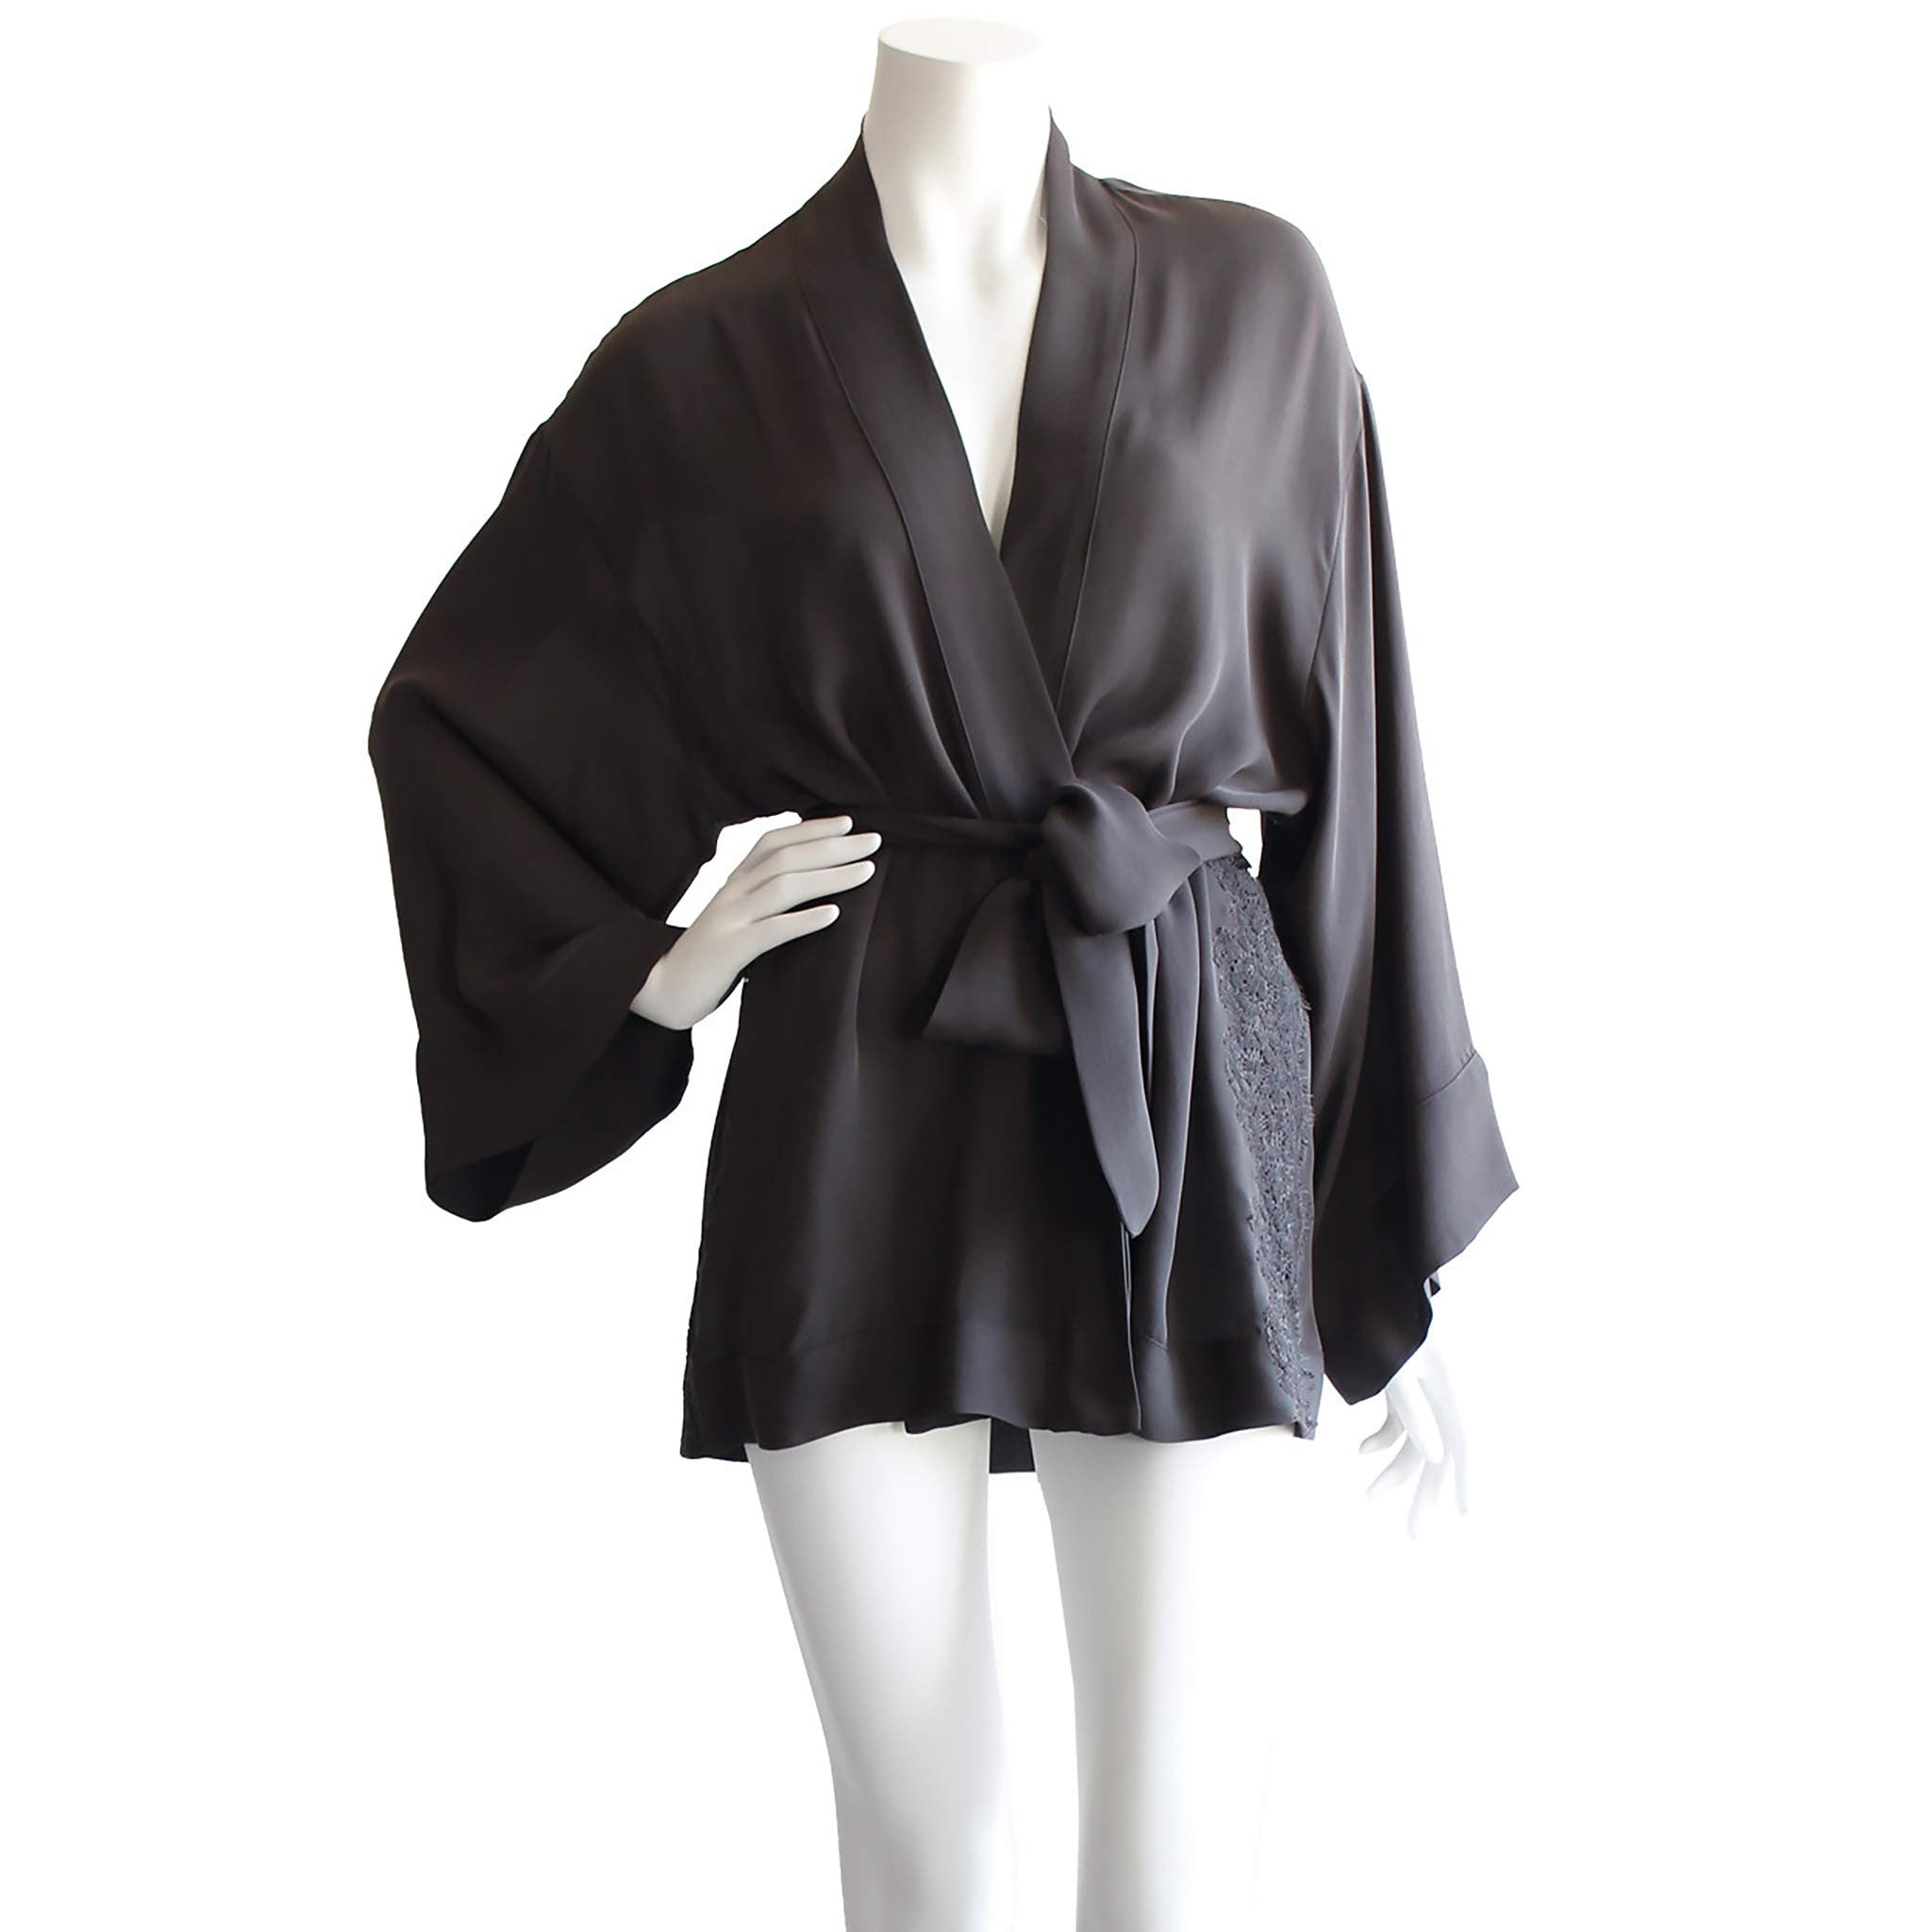 Aurora Kimono Robe in Diamond Slice Silk Double Georgette